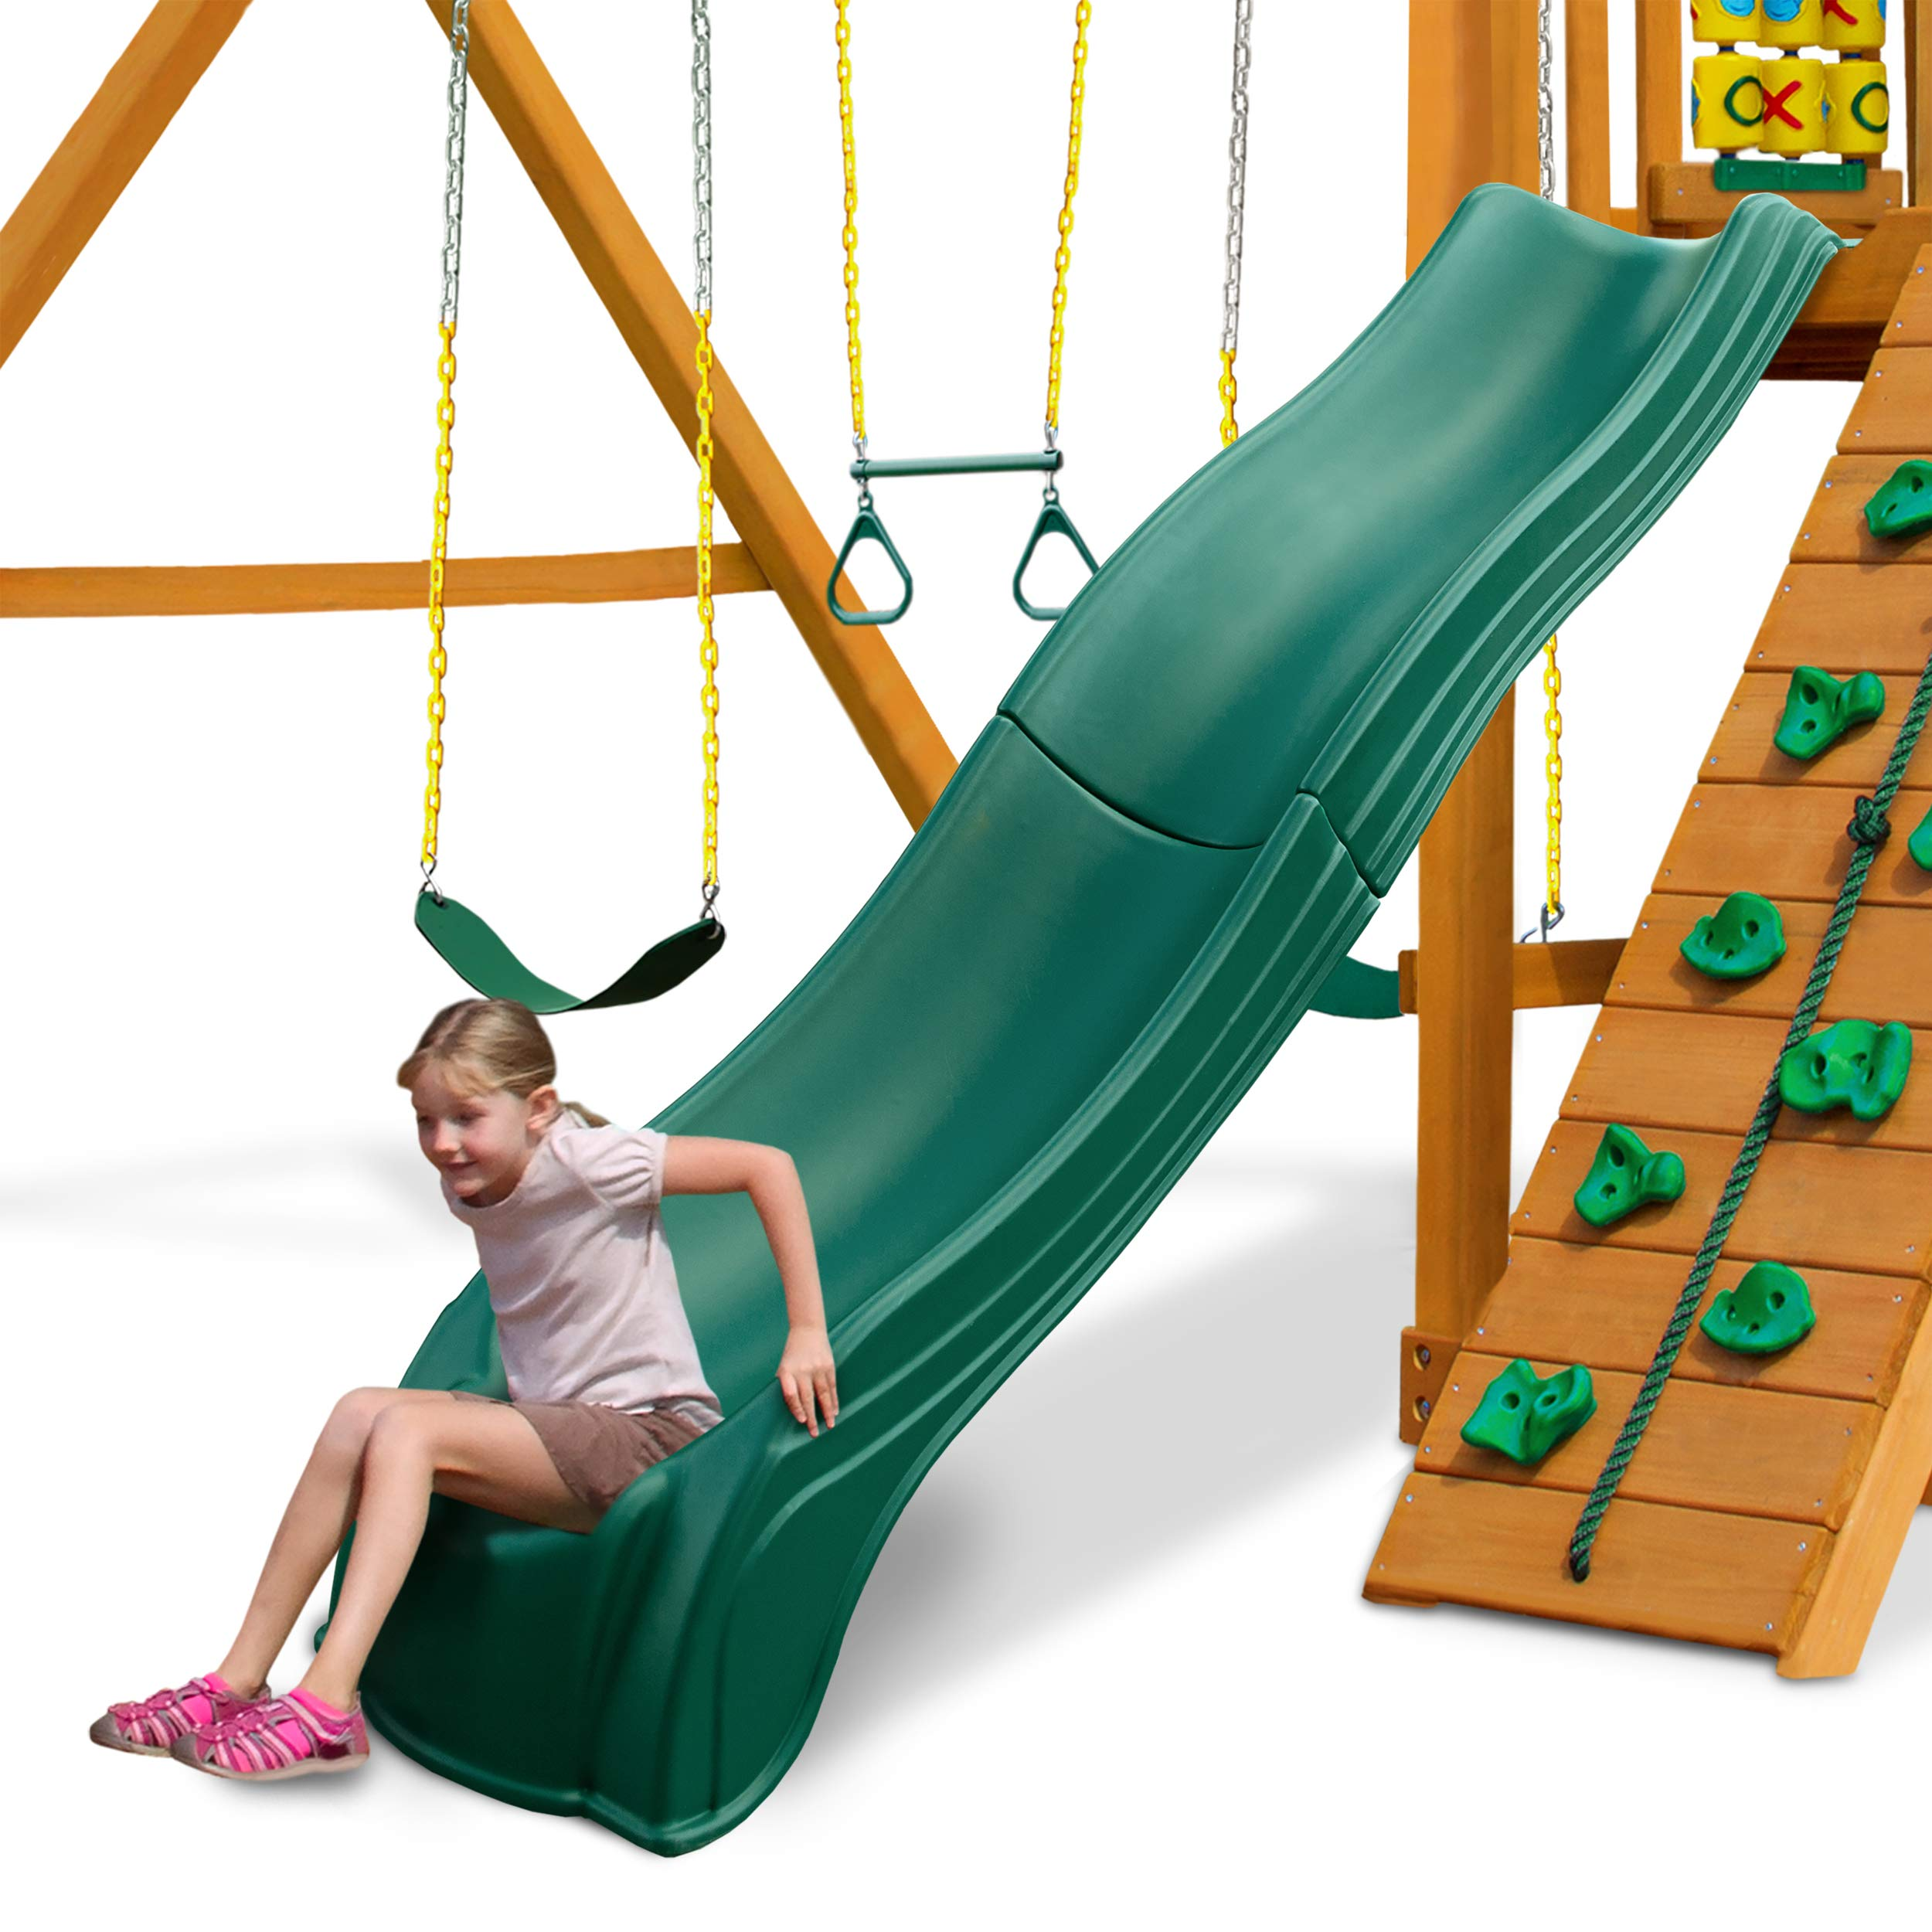 Swing-N-Slide WS 5033 Olympus Wave Slide Plastic Slide for 5' Decks, Green by Swing-N-Slide